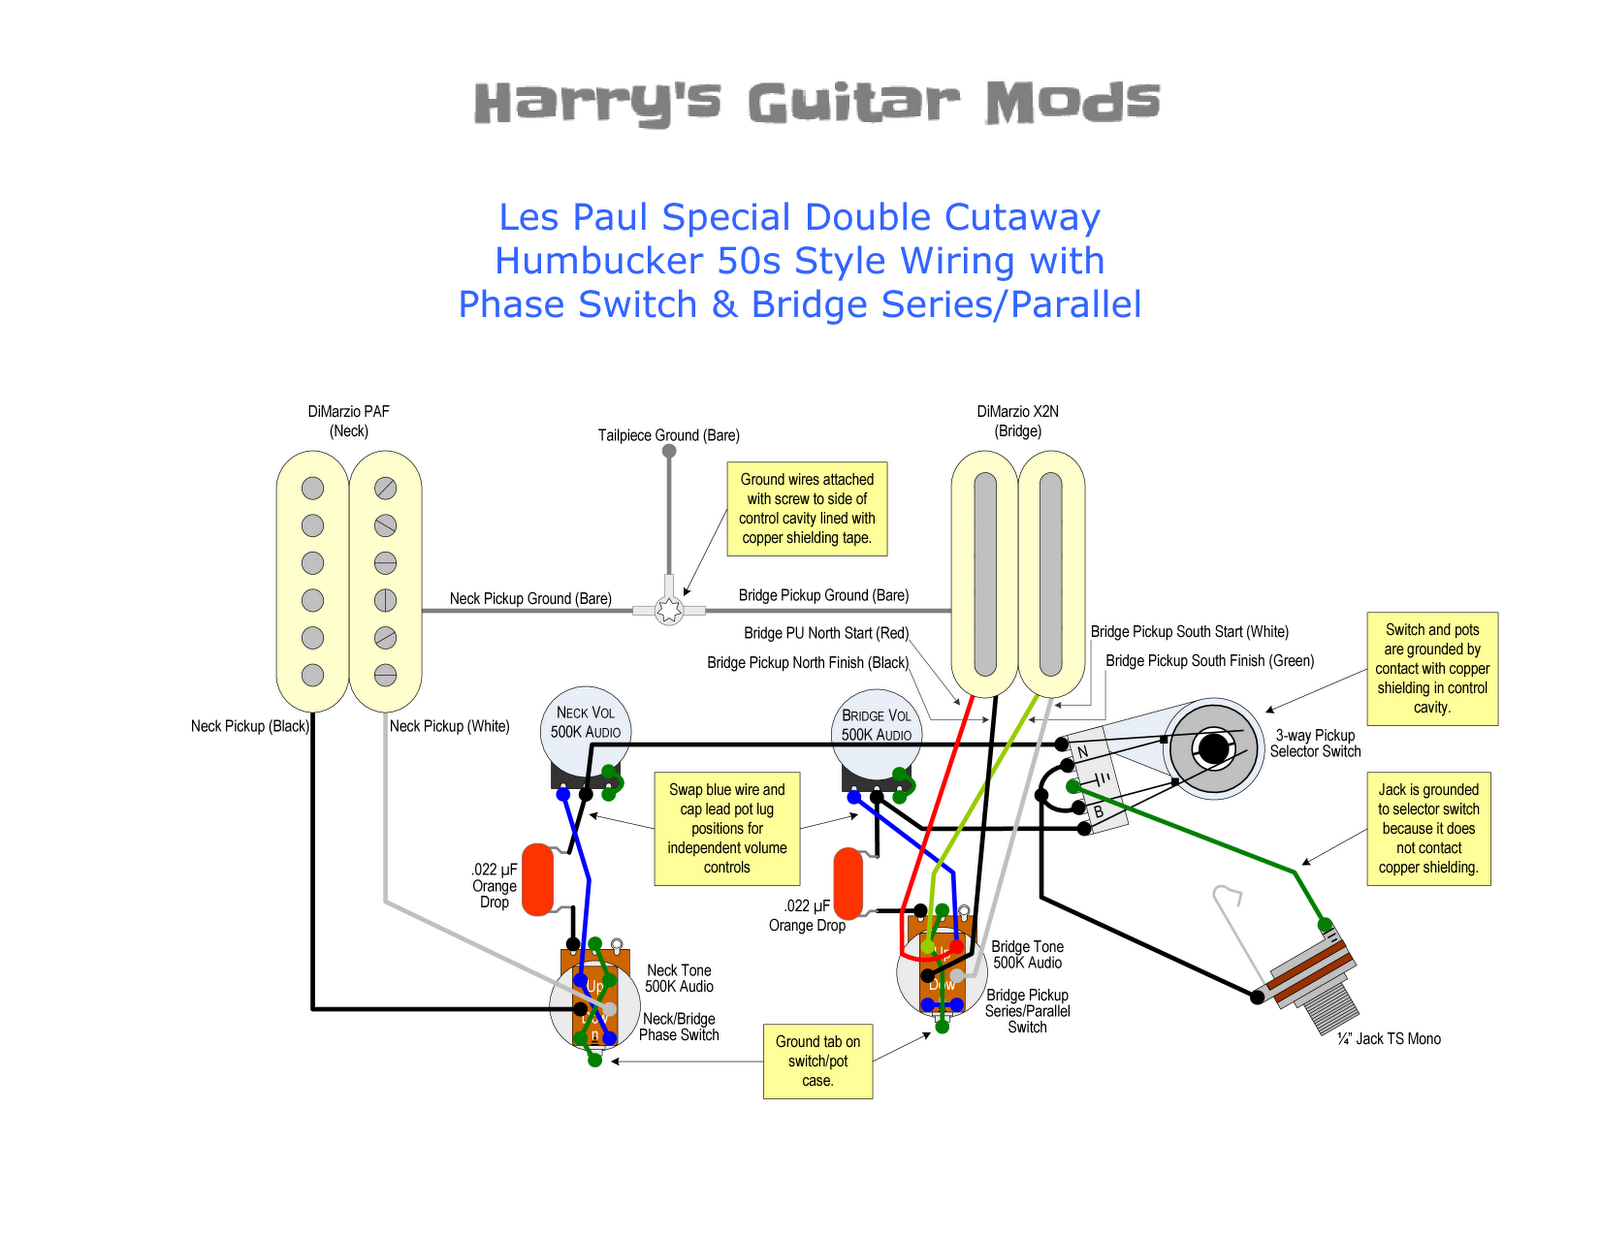 LPS+Wiring+Diagram harry's guitar mods controls wiring upgrade Les Paul Classic Wiring Diagram at nearapp.co